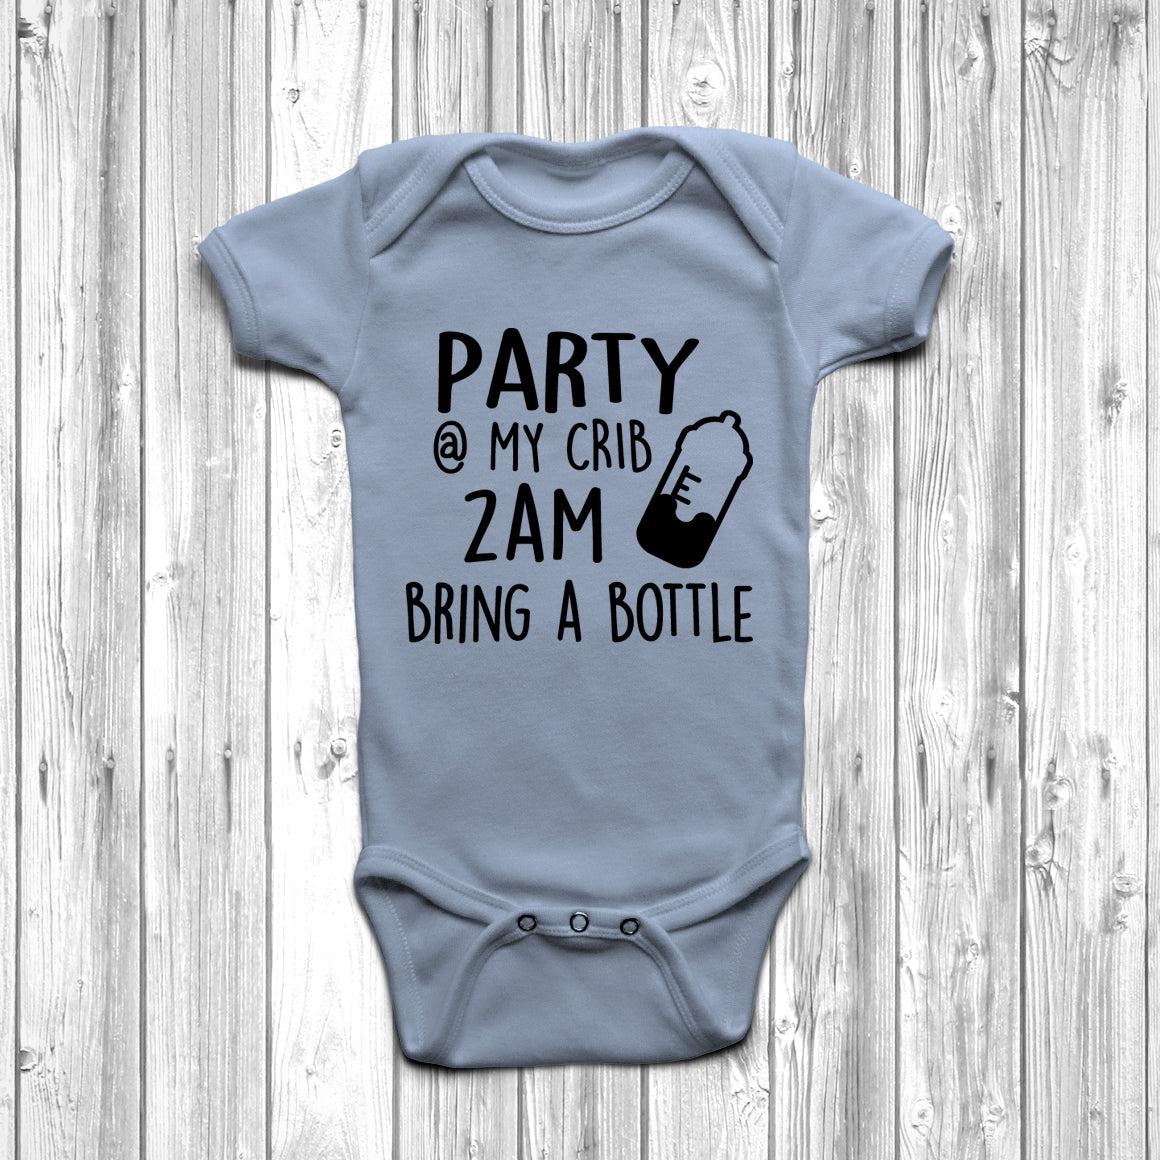 Party 3am My Crib Bring A Bottle Funny Baby Vest Grow Bodysuit Romper Suit